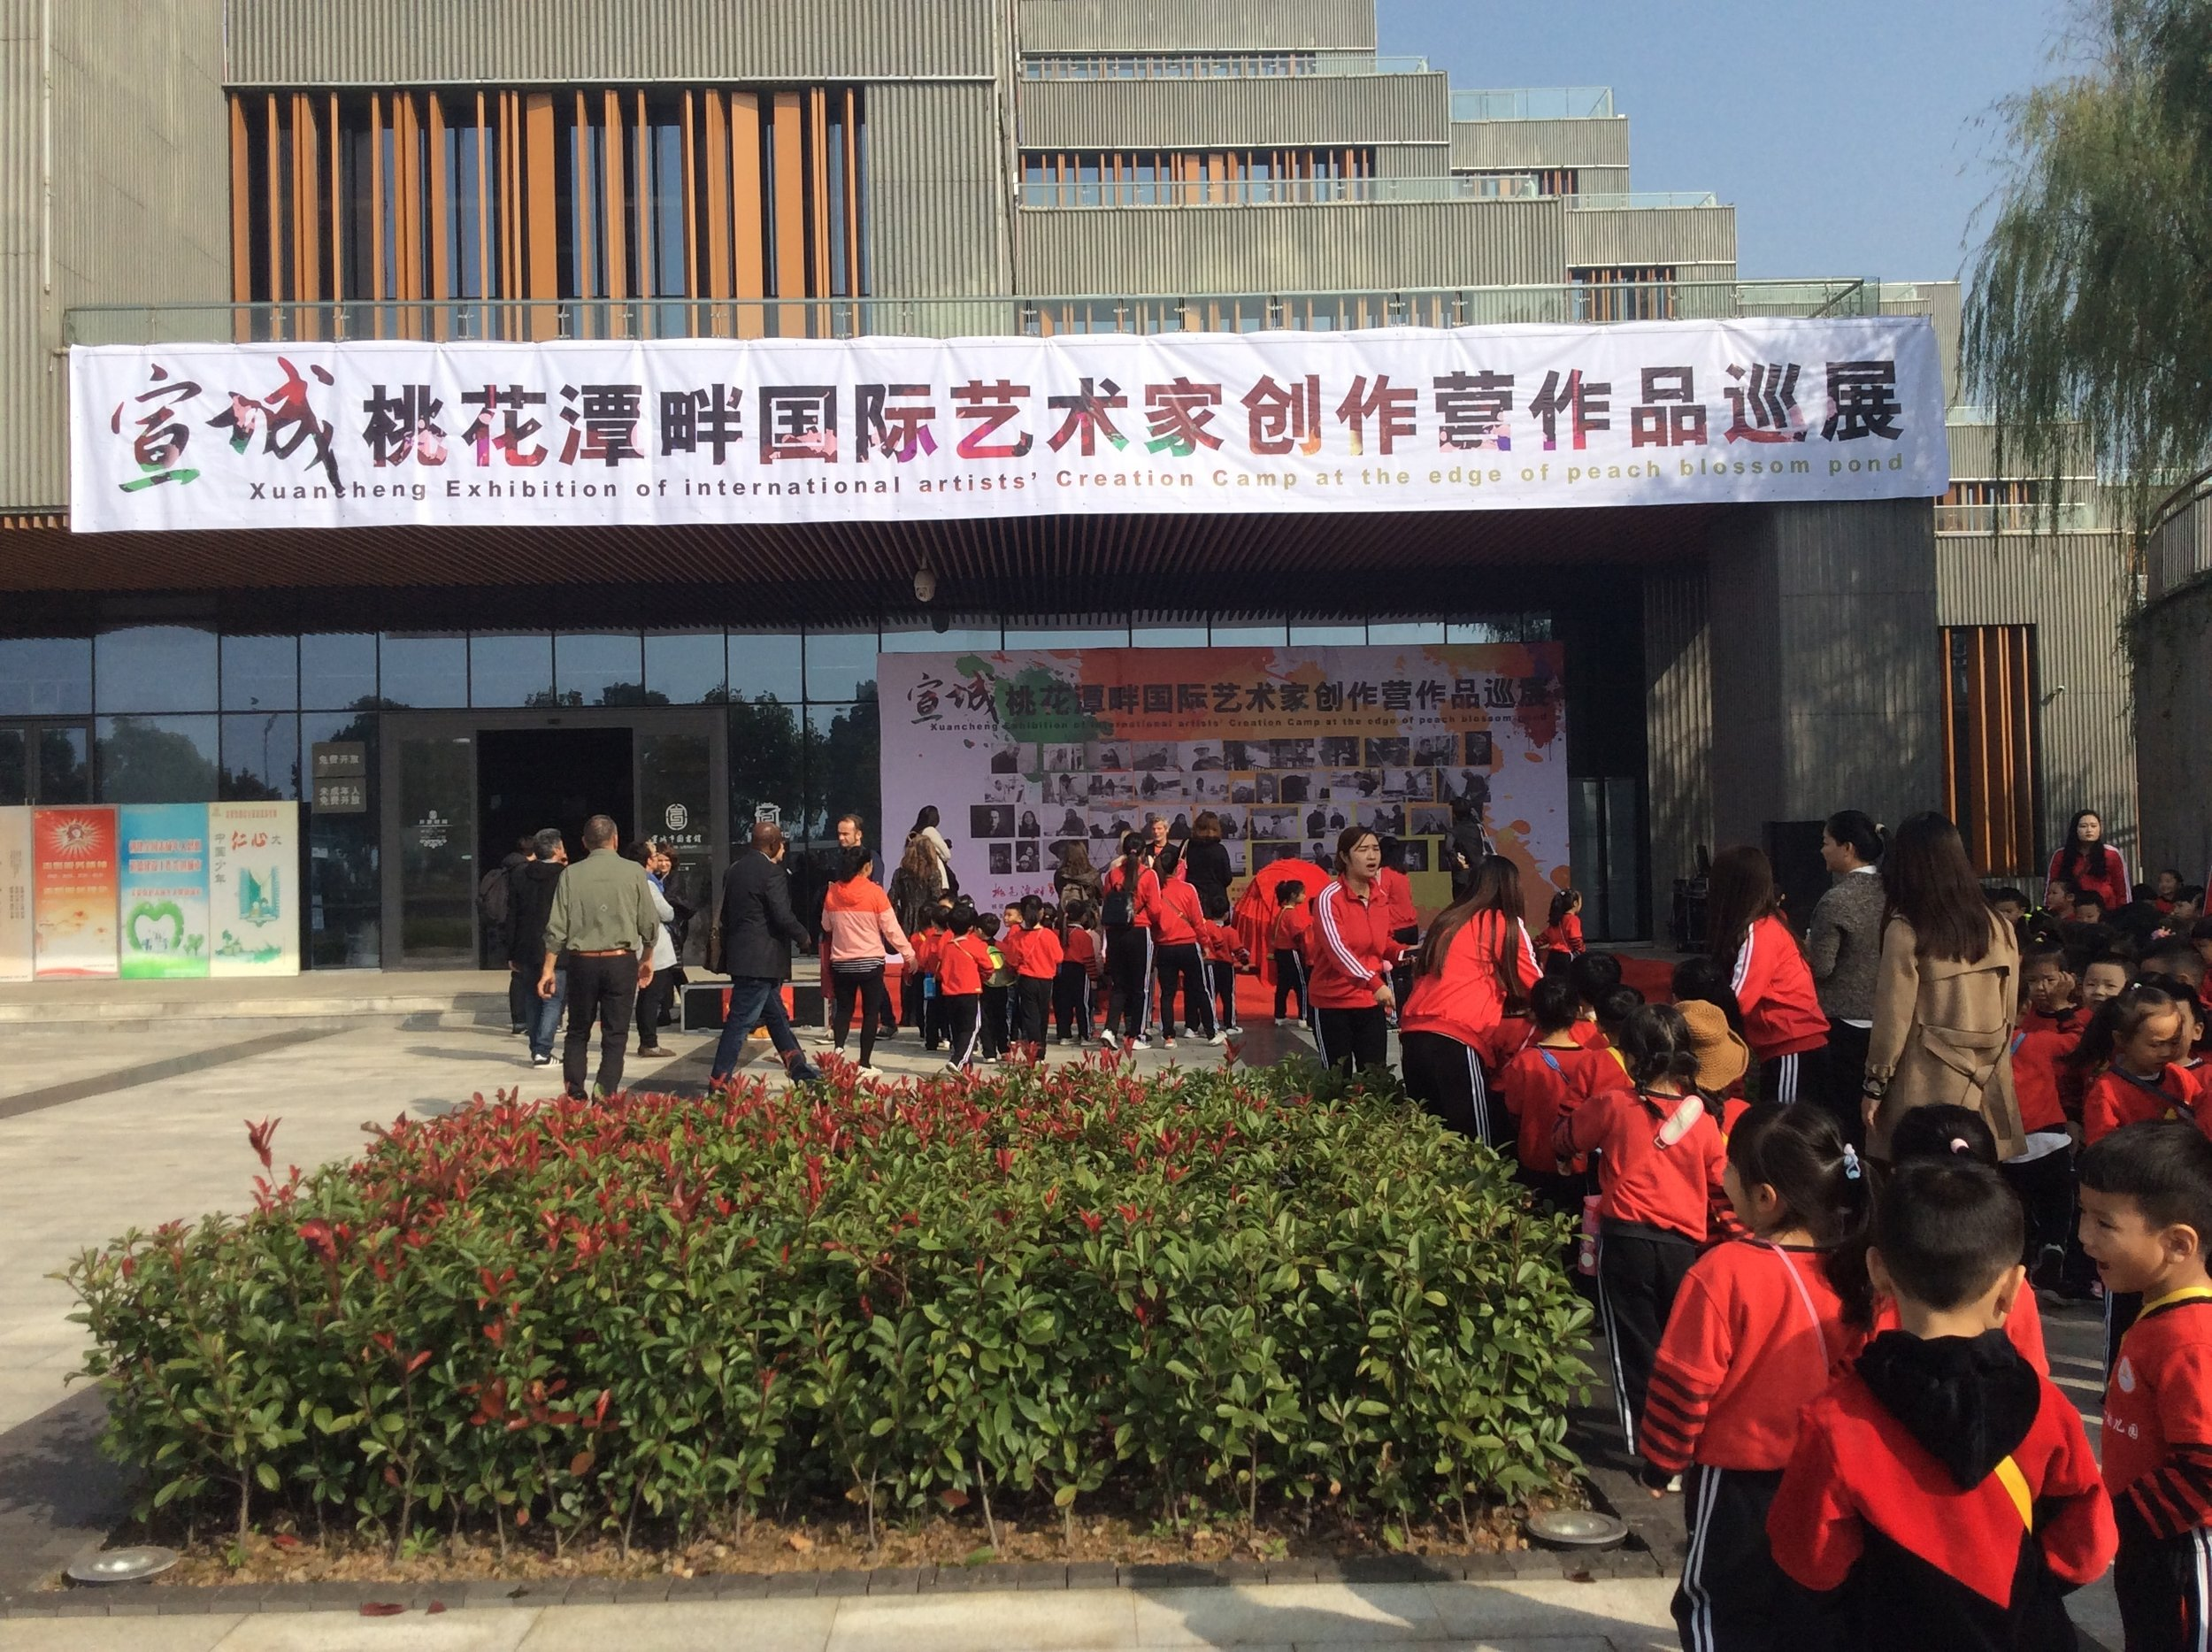 Children from a local school in Tao Hua Tan lining up to view Xuancheng Exhibition